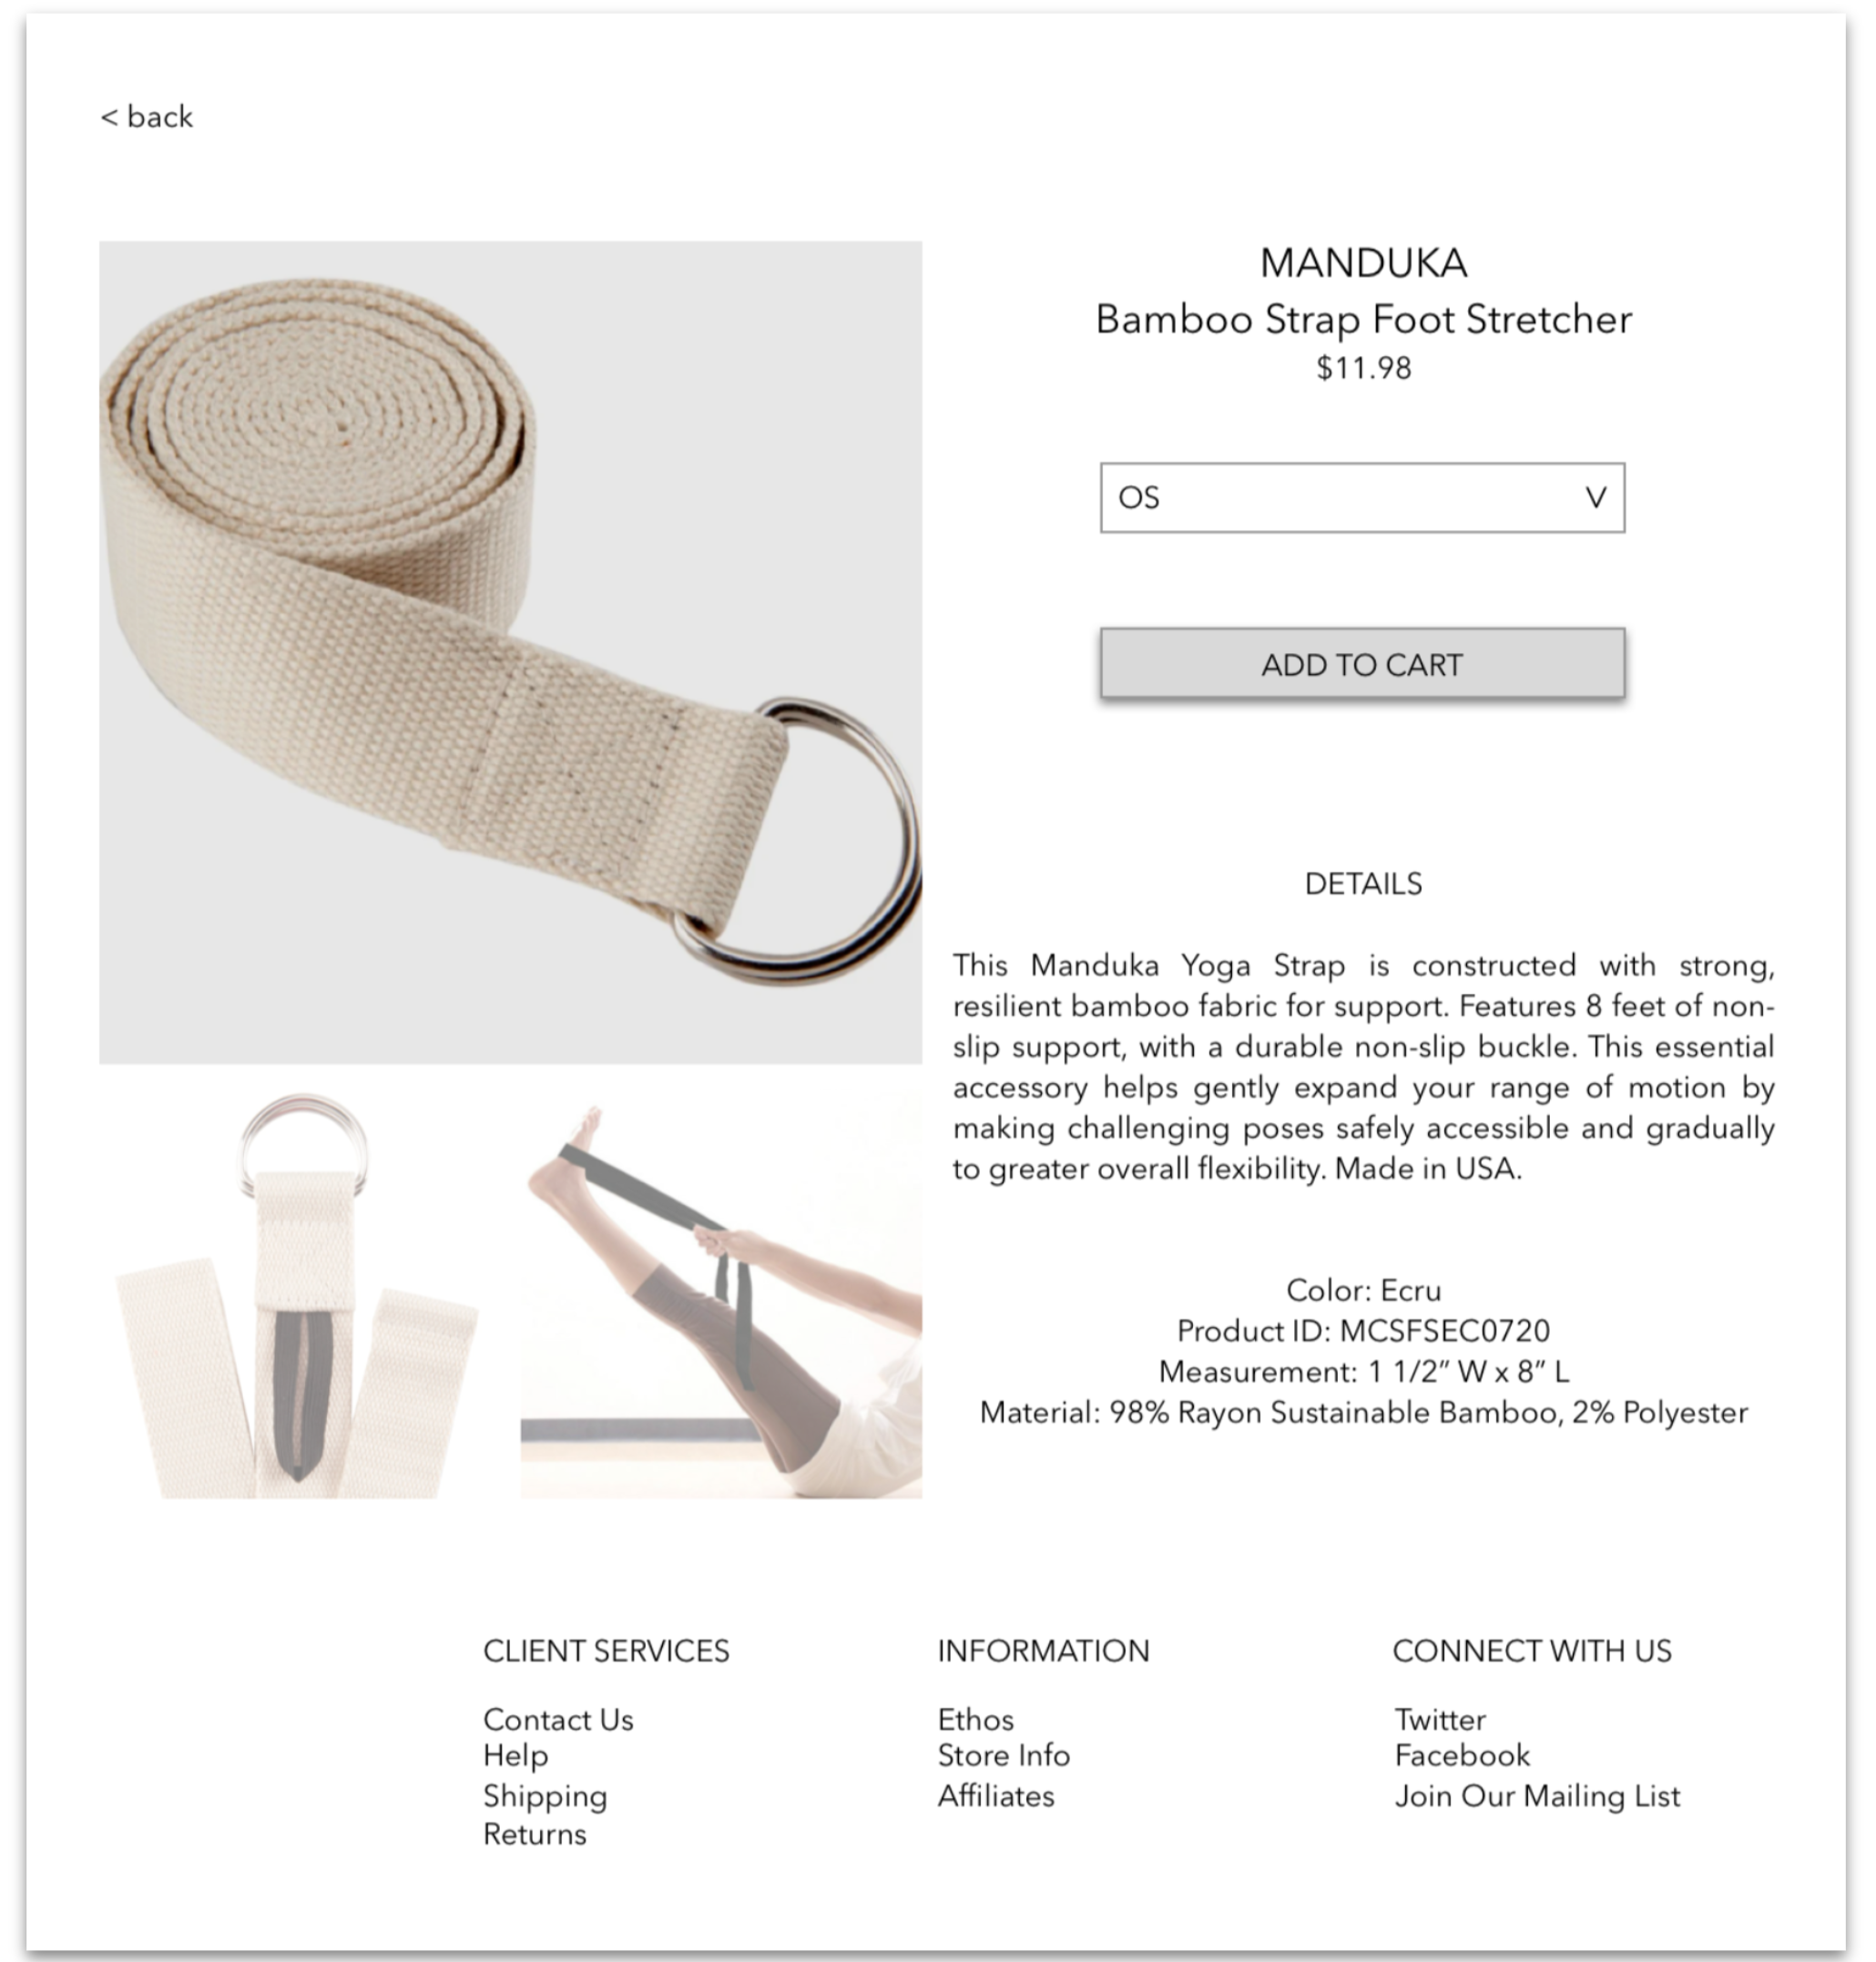 IMPROVED PRODUCT PAGE FOR FOOT STRETCHER